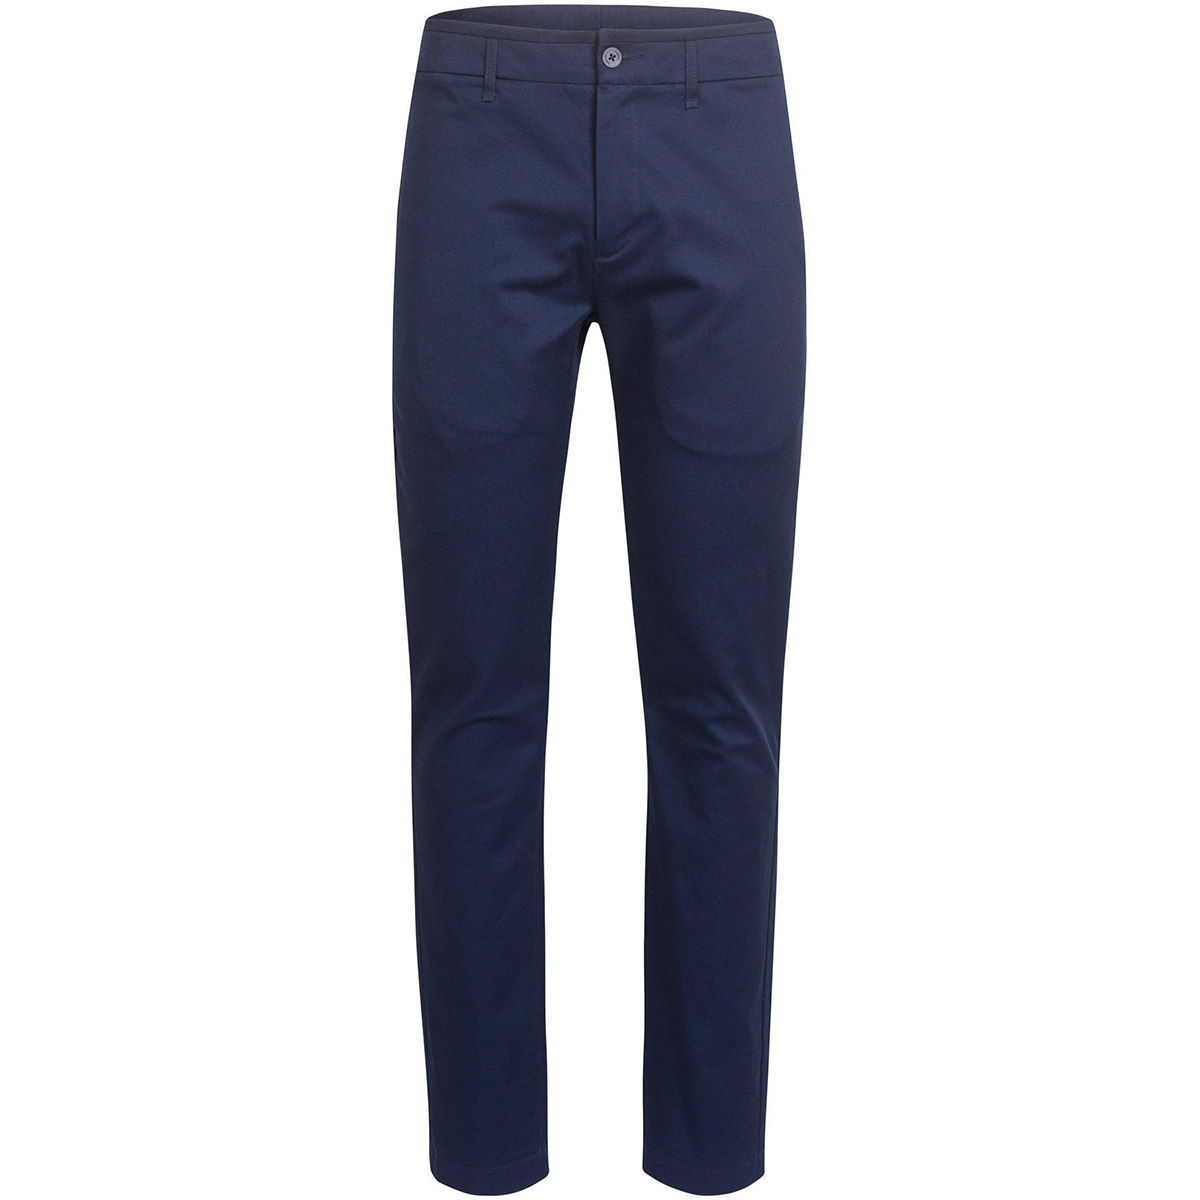 Rapha Cotton Trousers (Relaxed Fit)